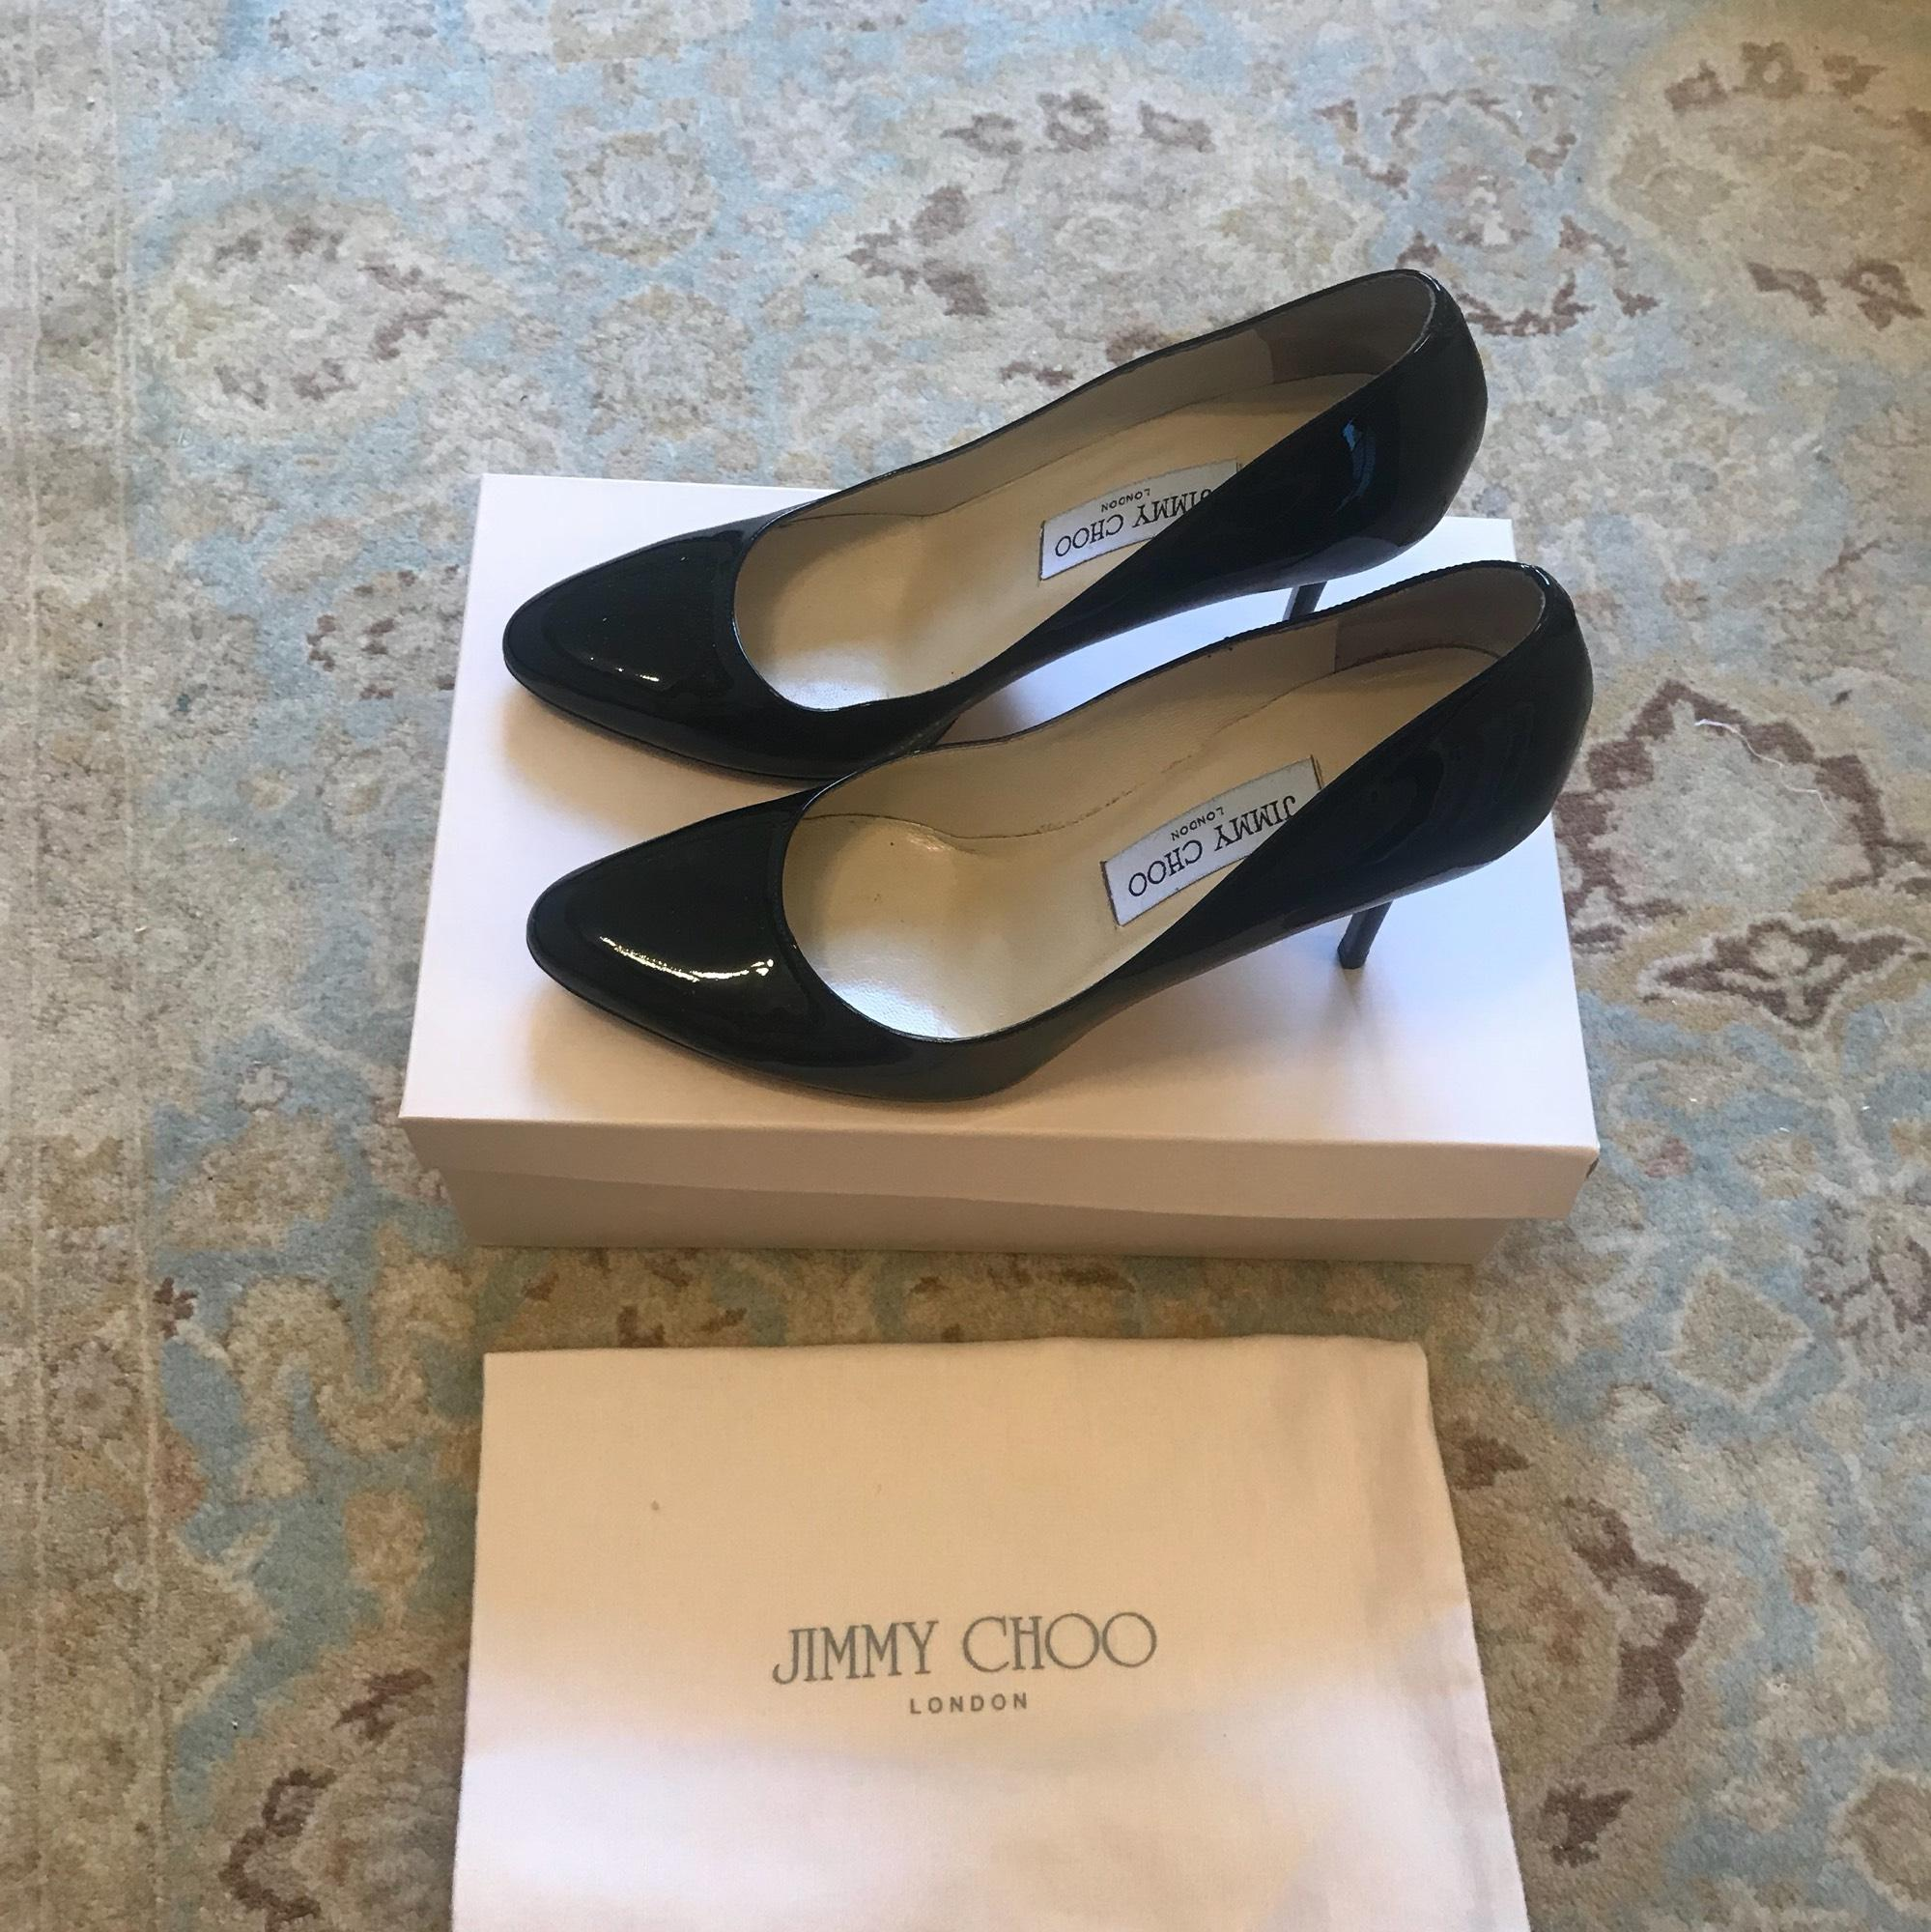 61a634dfdf54 ... Jimmy Choo Black Gilbert Pumps Size US US US 9 Regular (M